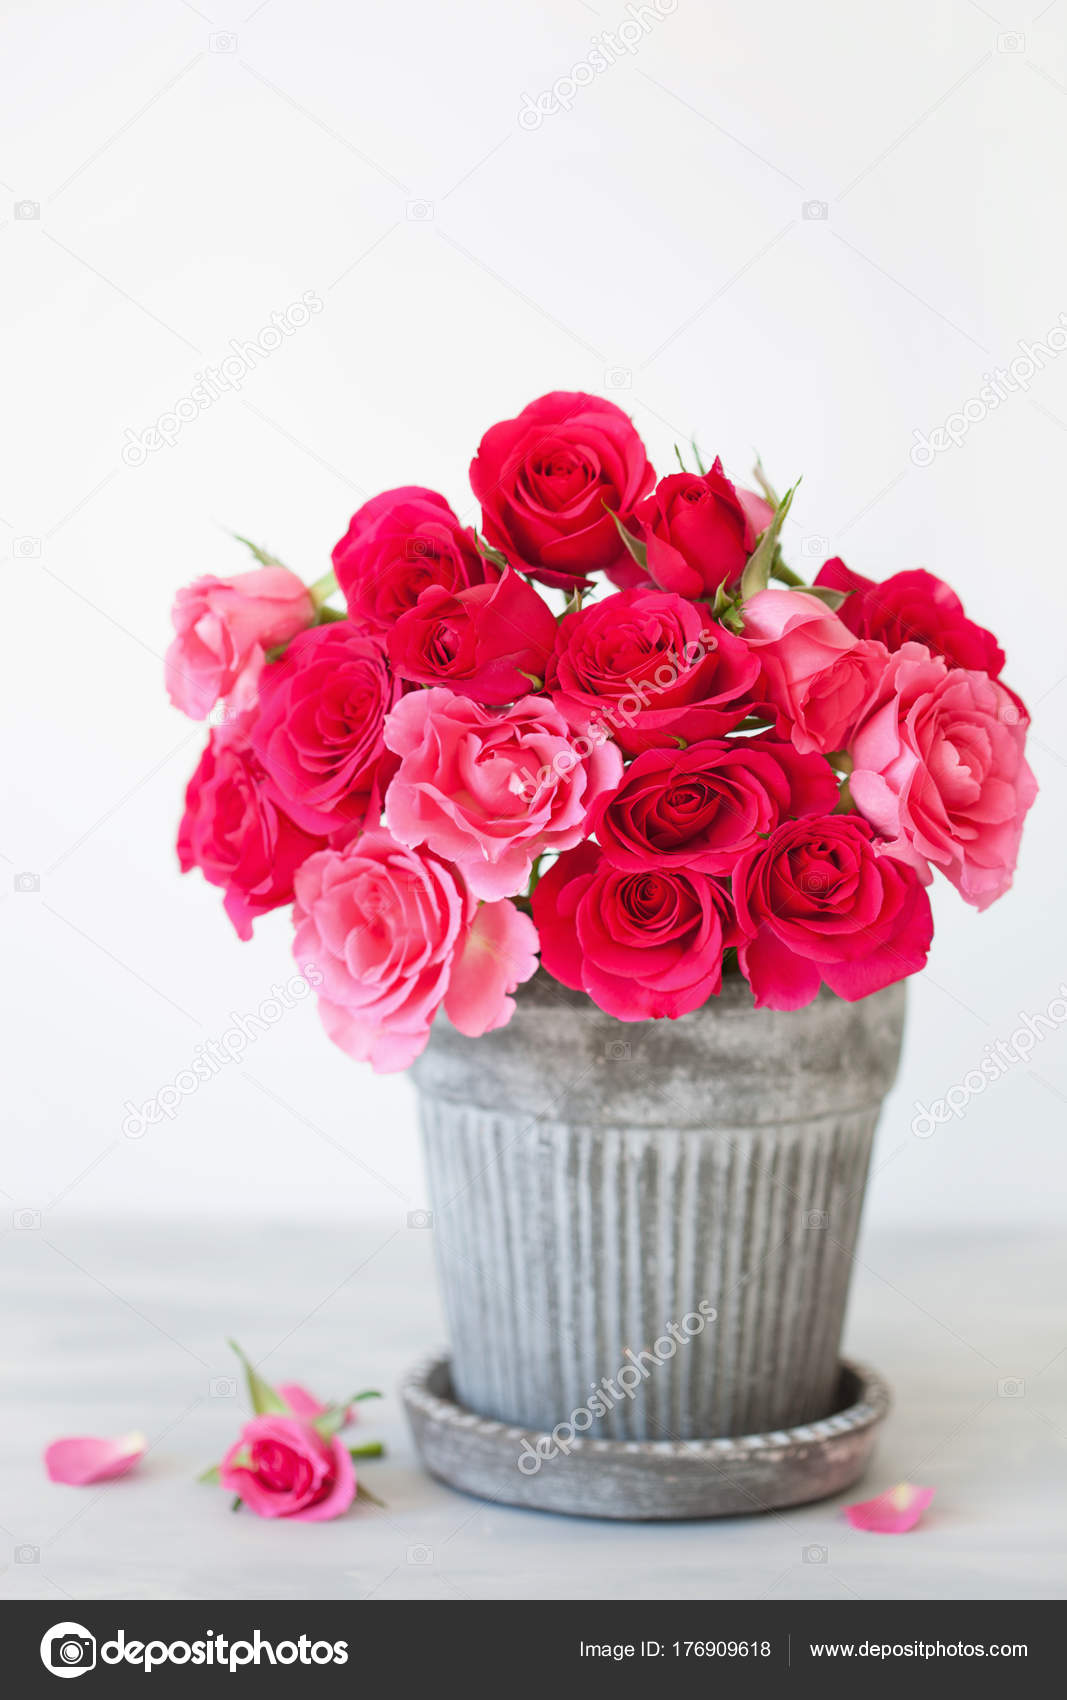 Beautiful Red Rose Flowers Bouquet In Vase Over White Stock Photo